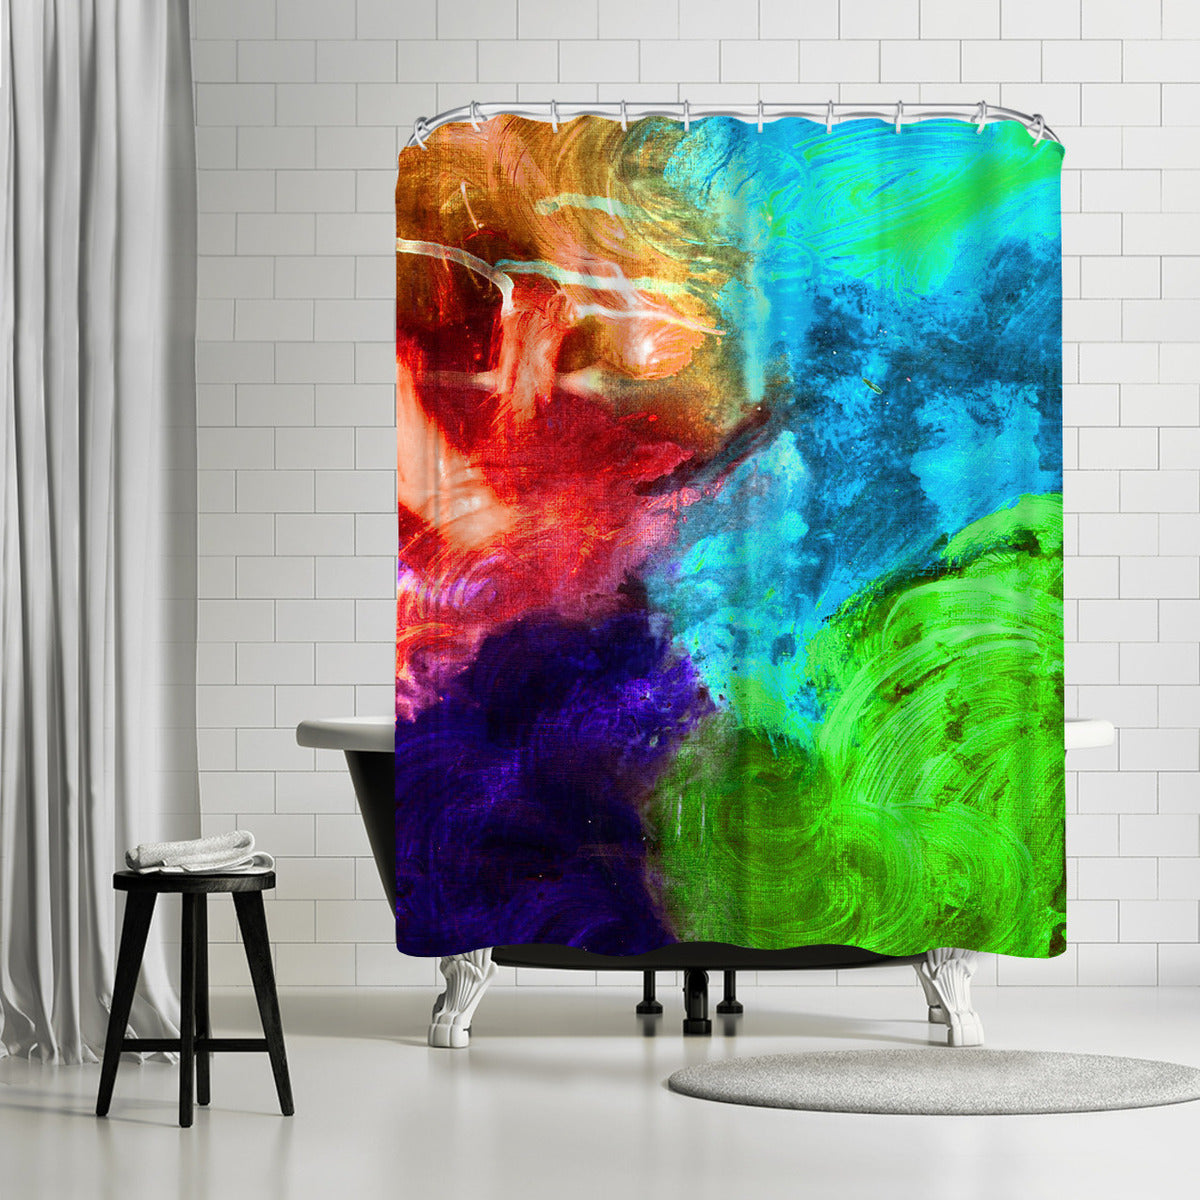 Expressions 3 by Destiny Womack Shower Curtain -  - Americanflat